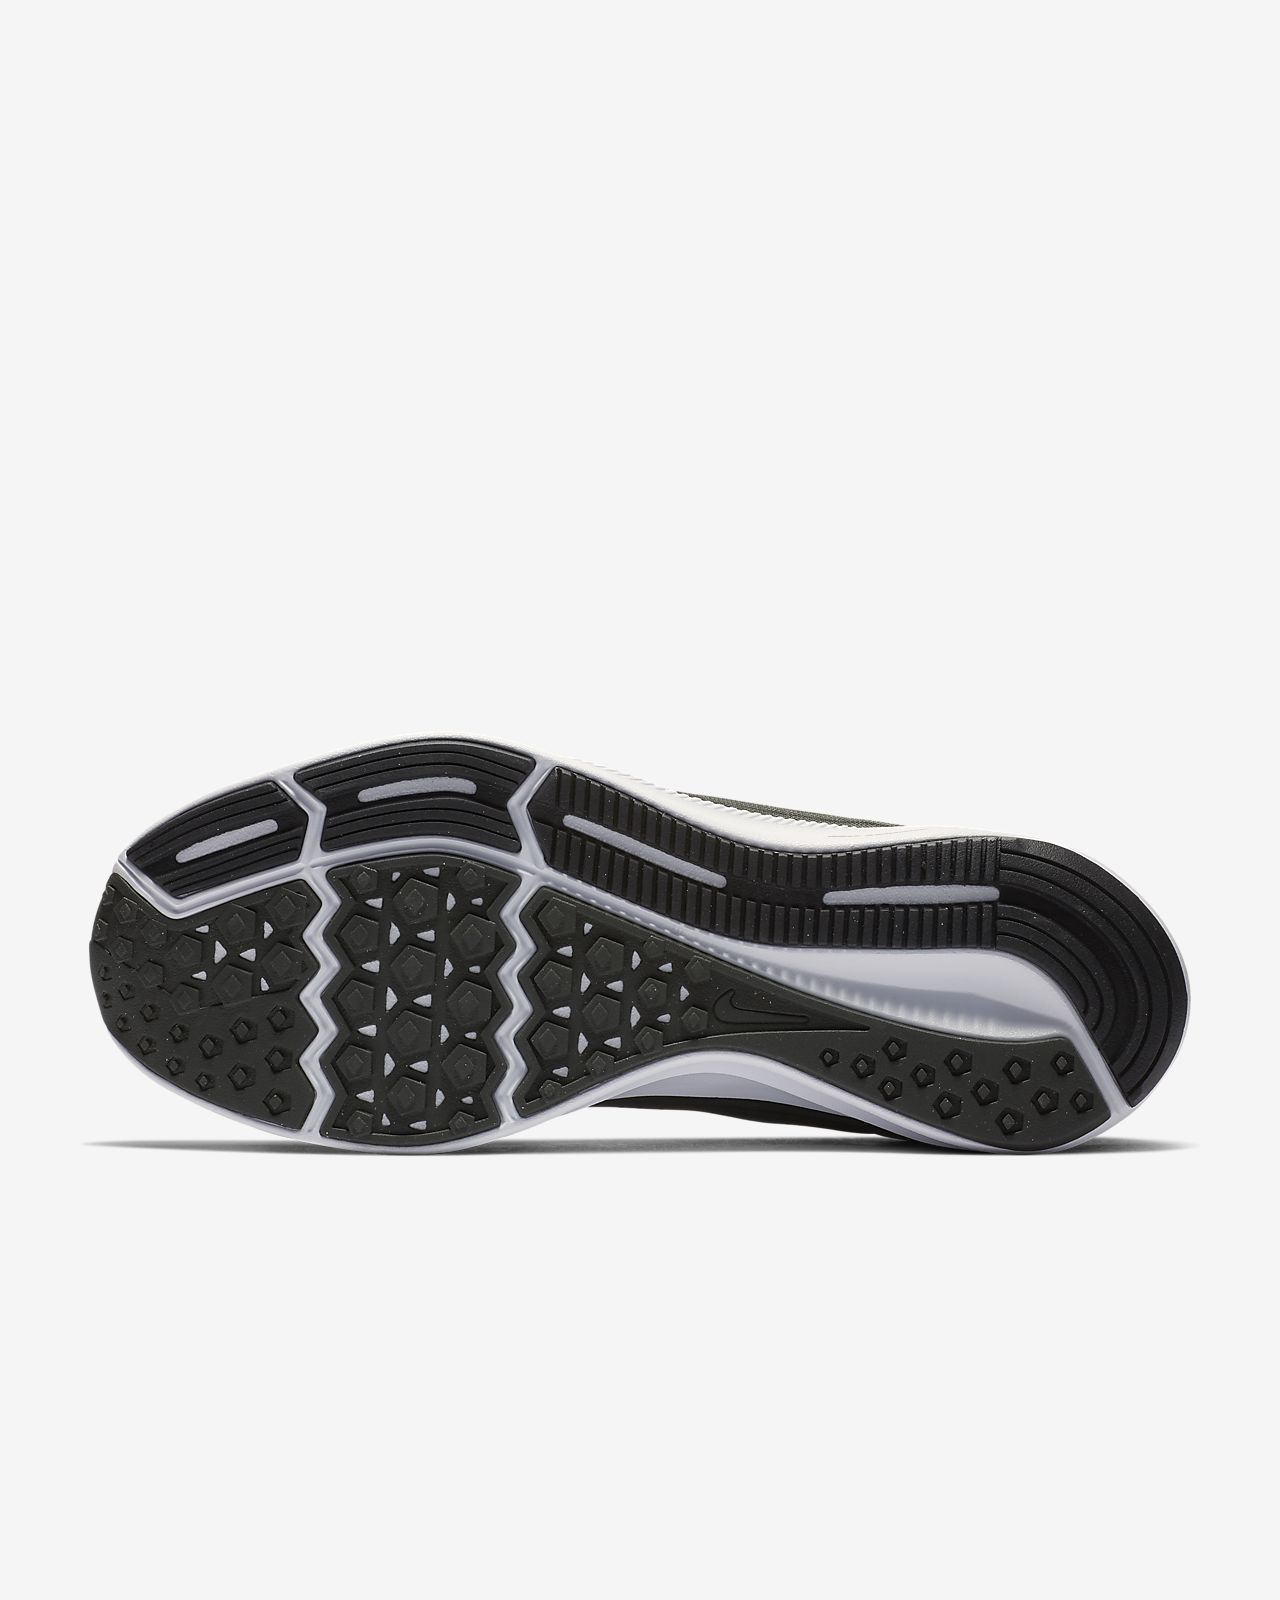 check out 6d0c1 11a26 ... Chaussure de running Nike Downshifter 8 pour Homme